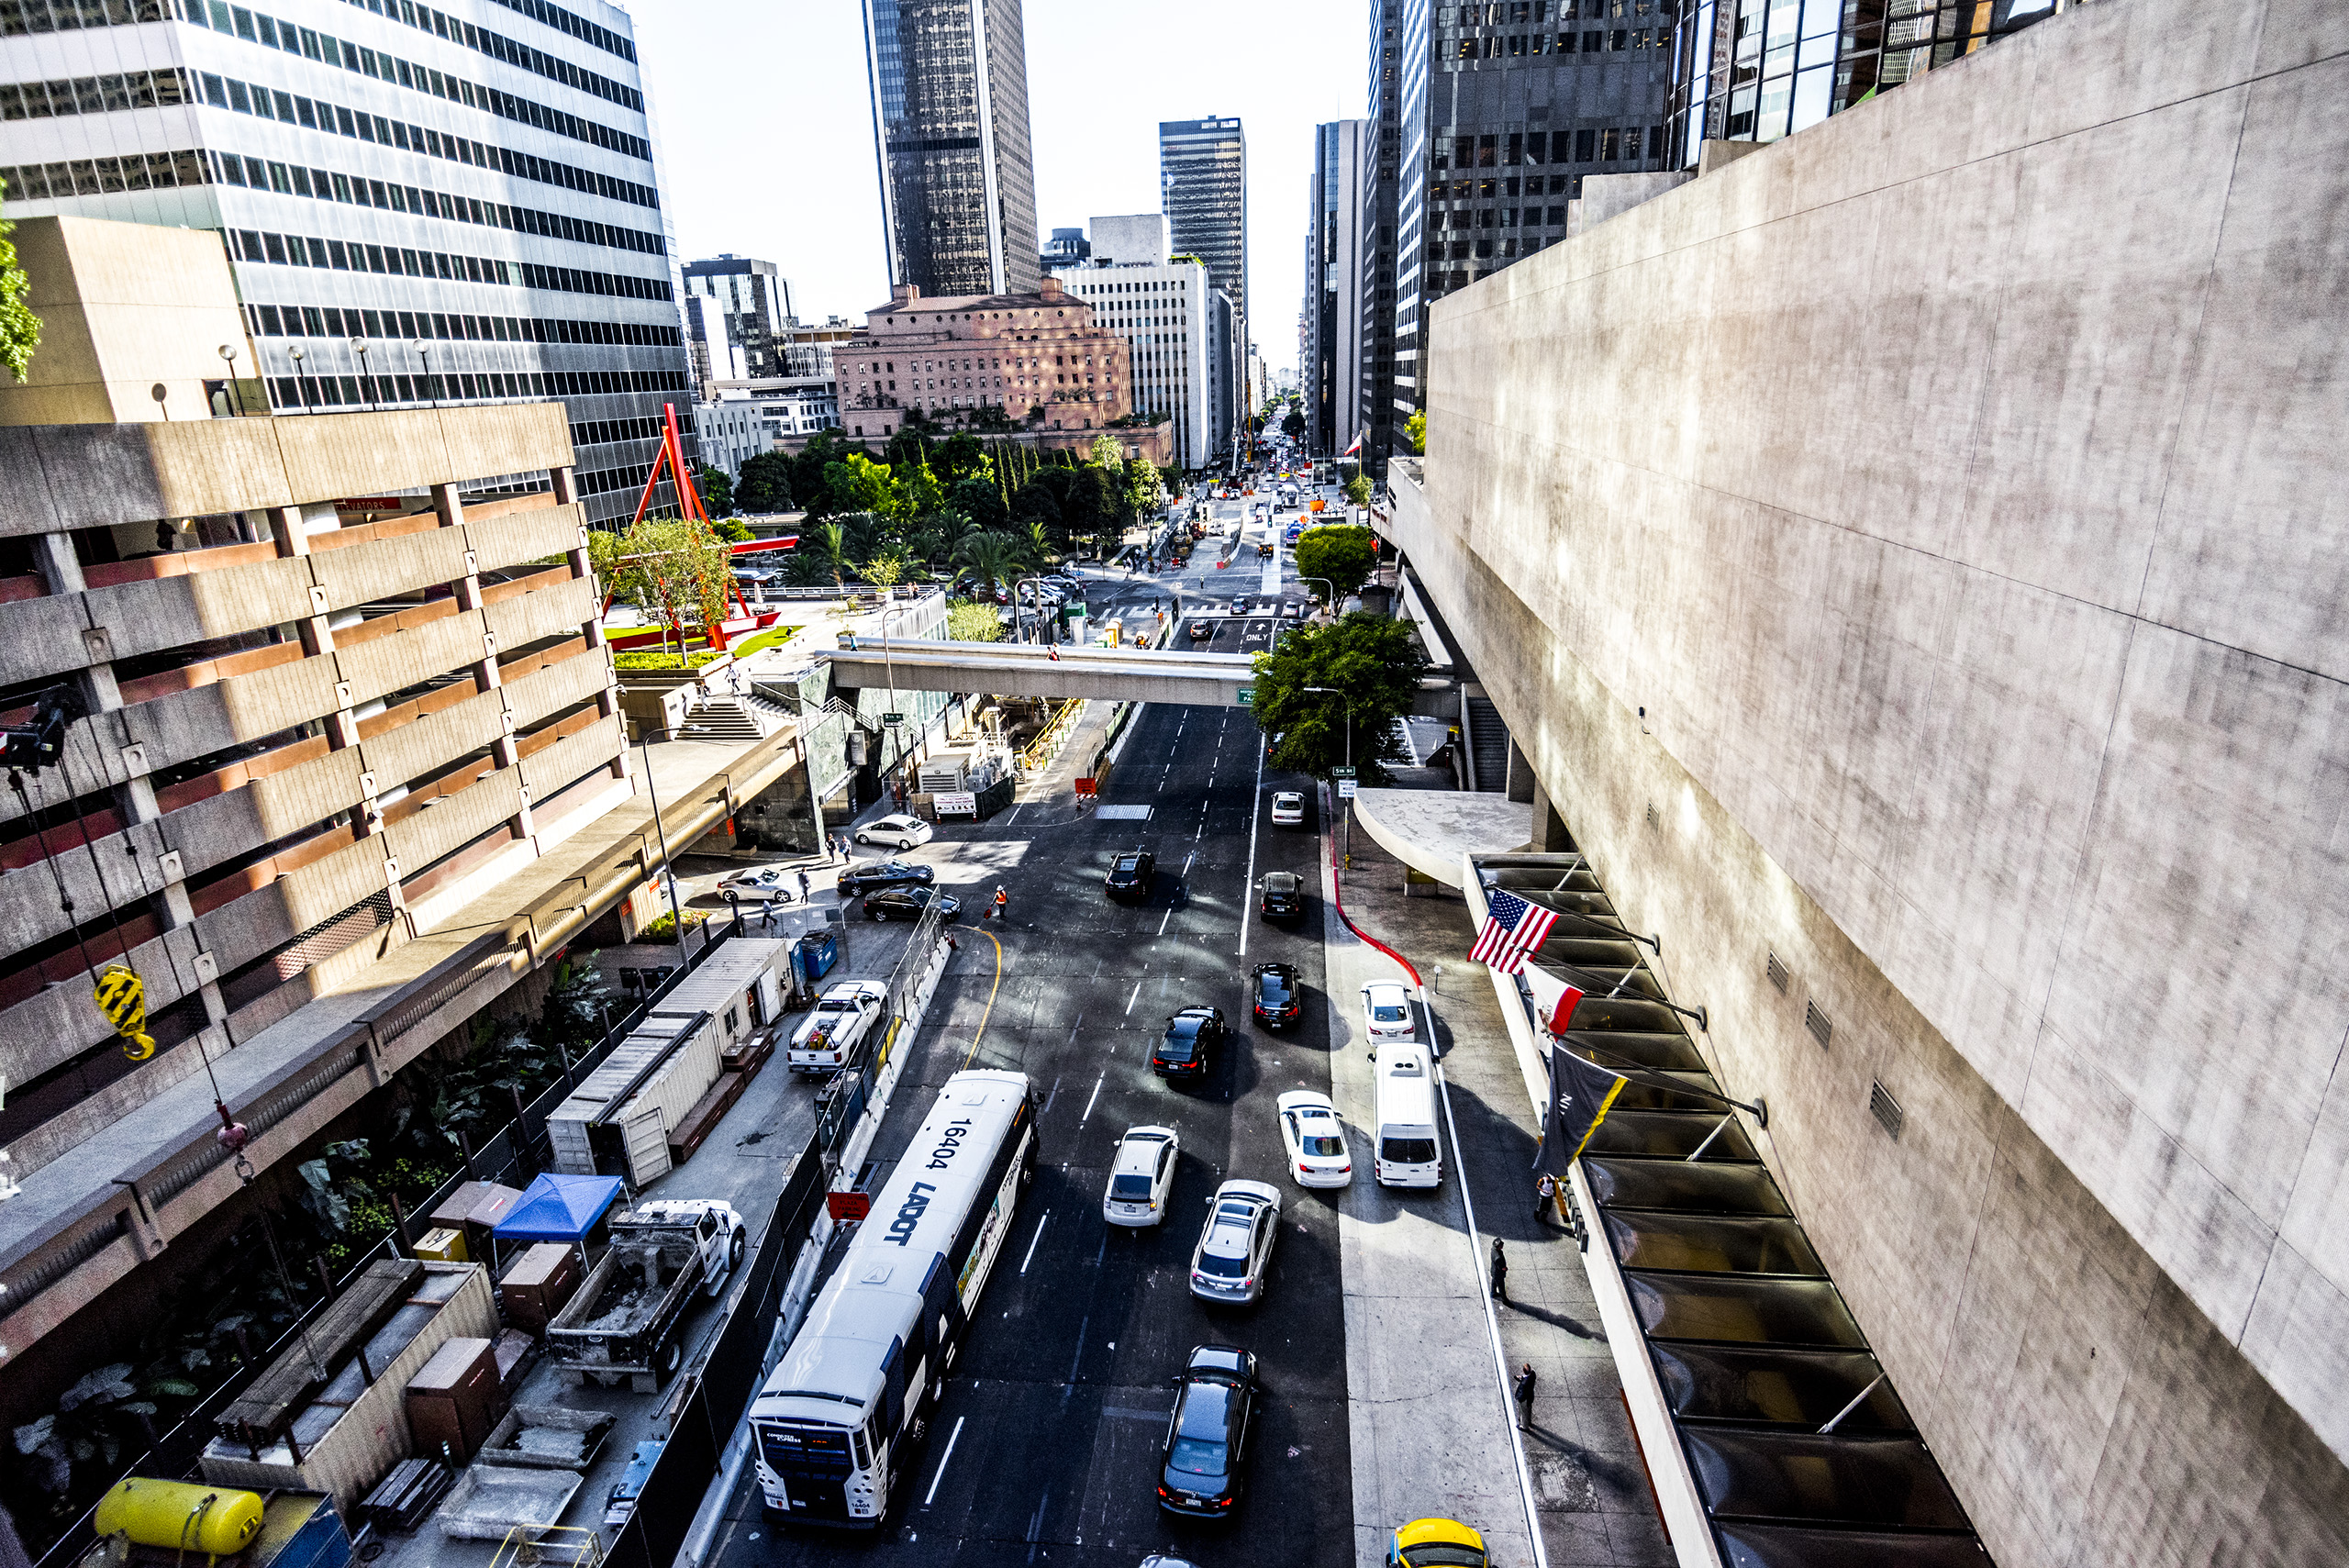 Walking across the skybridge to the Bonaventure Hotel in Downtown Los Angeles and looking down at the busy street below